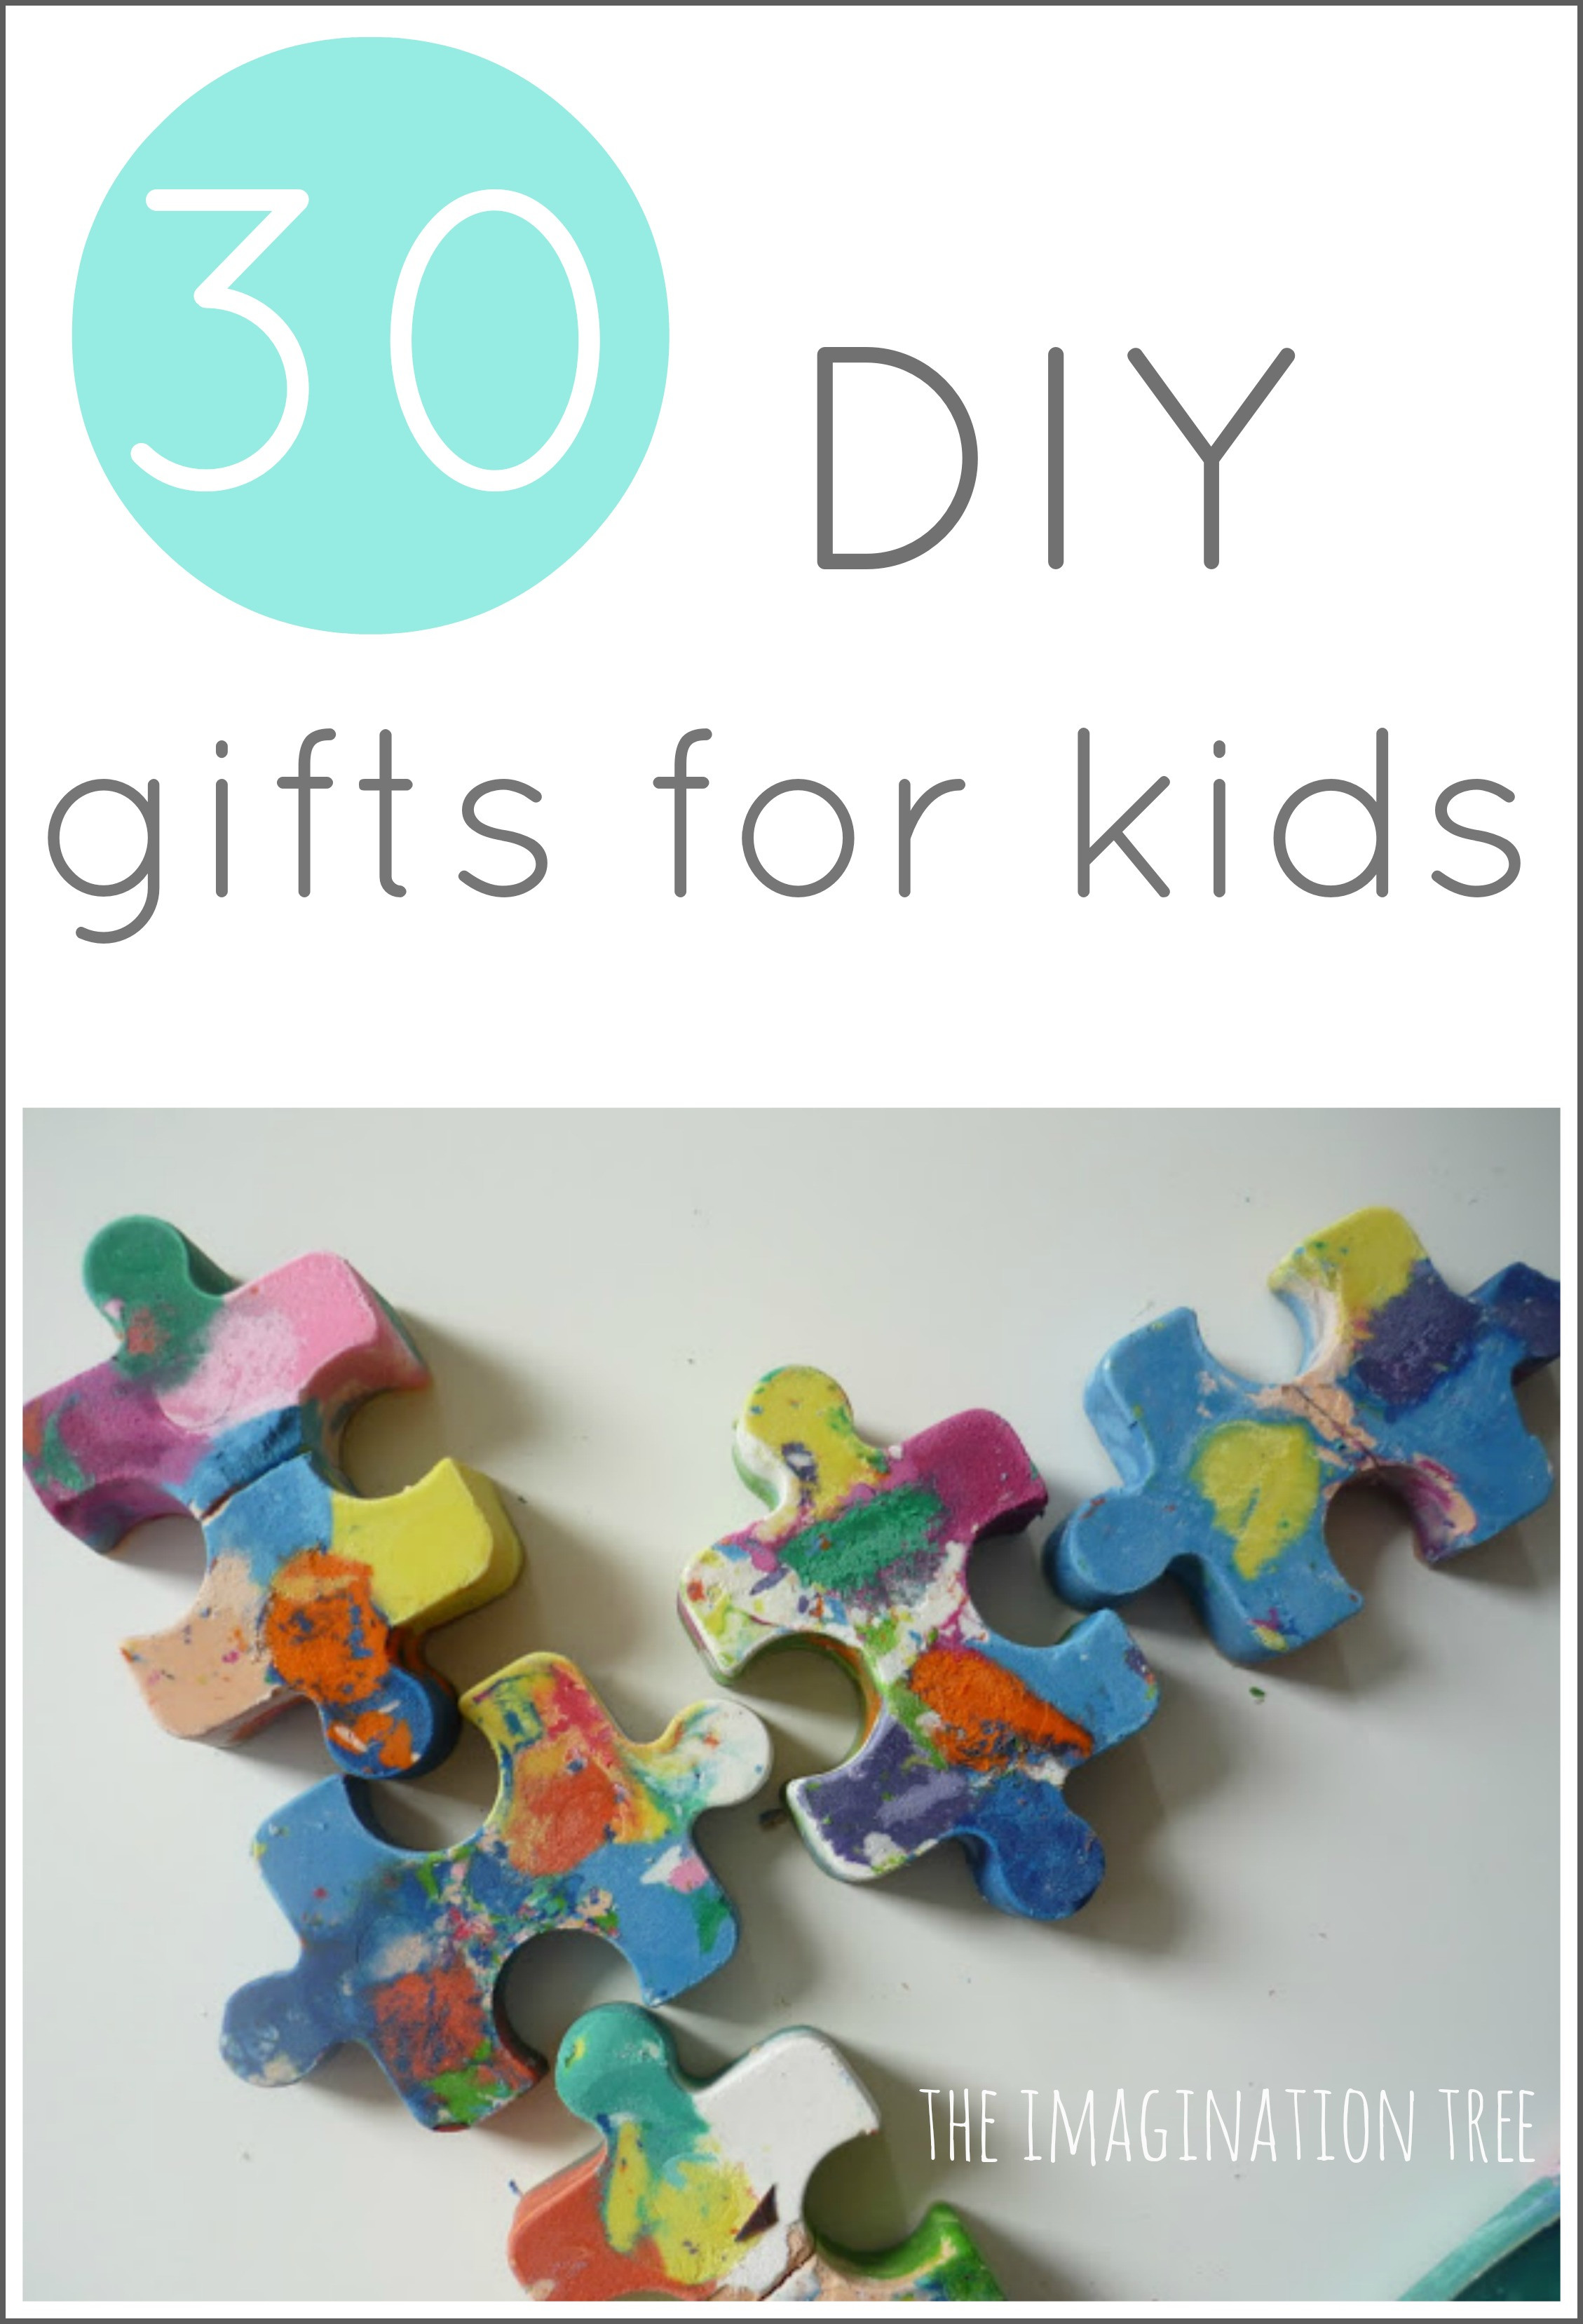 Best ideas about DIY Gifts For Kids . Save or Pin 30 DIY Gifts to Make for Kids The Imagination Tree Now.